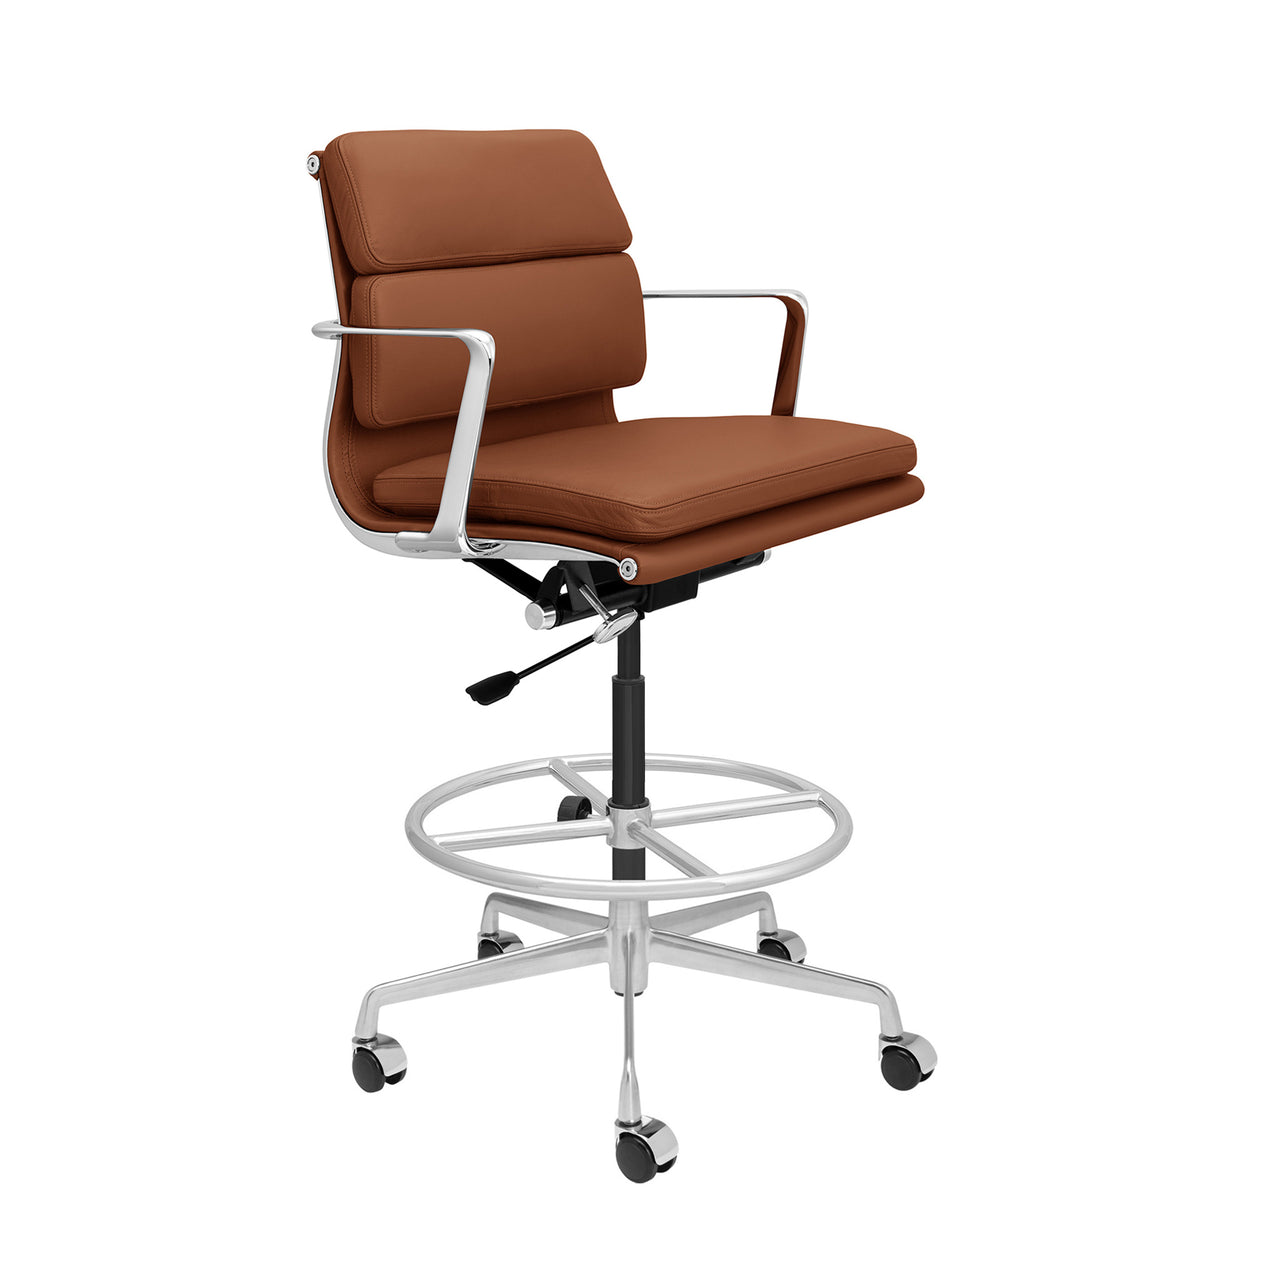 SOHO Pro Soft Pad Drafting Chair (Brown Italian Leather)